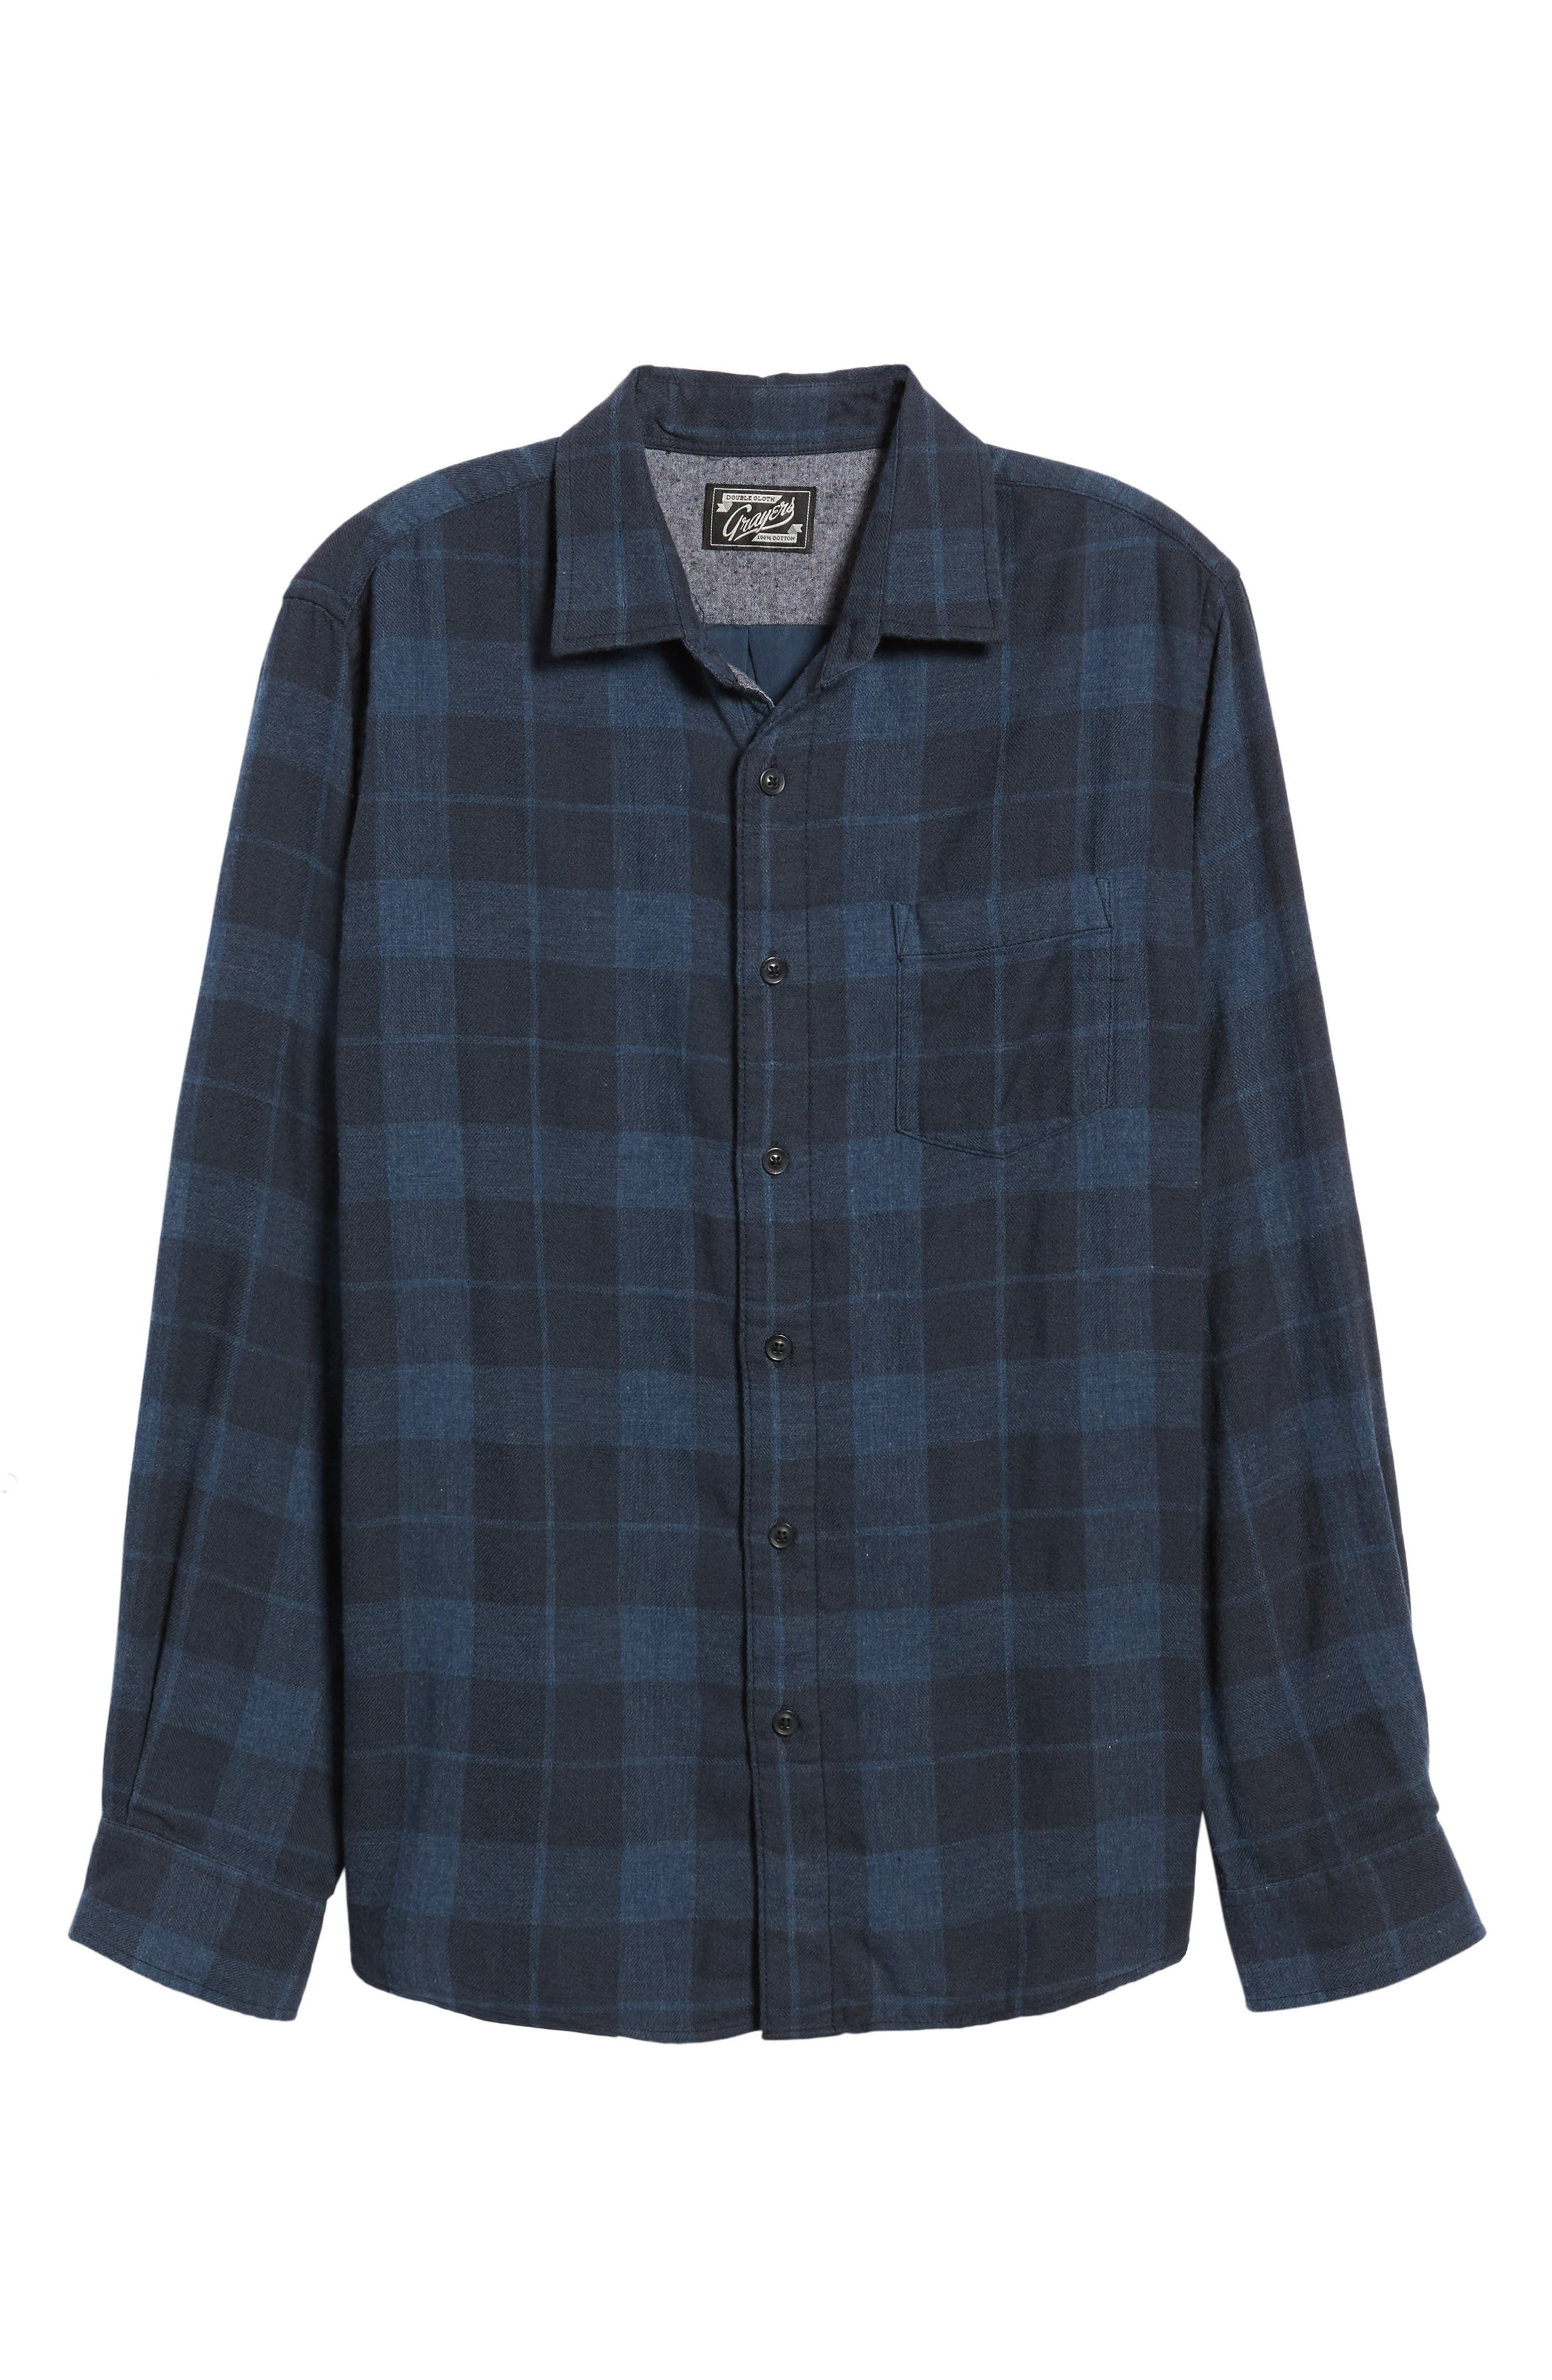 Helsby Double Cloth Plaid Sport Shirt,                             Alternate thumbnail 6, color,                             Charcoal Navy Heather